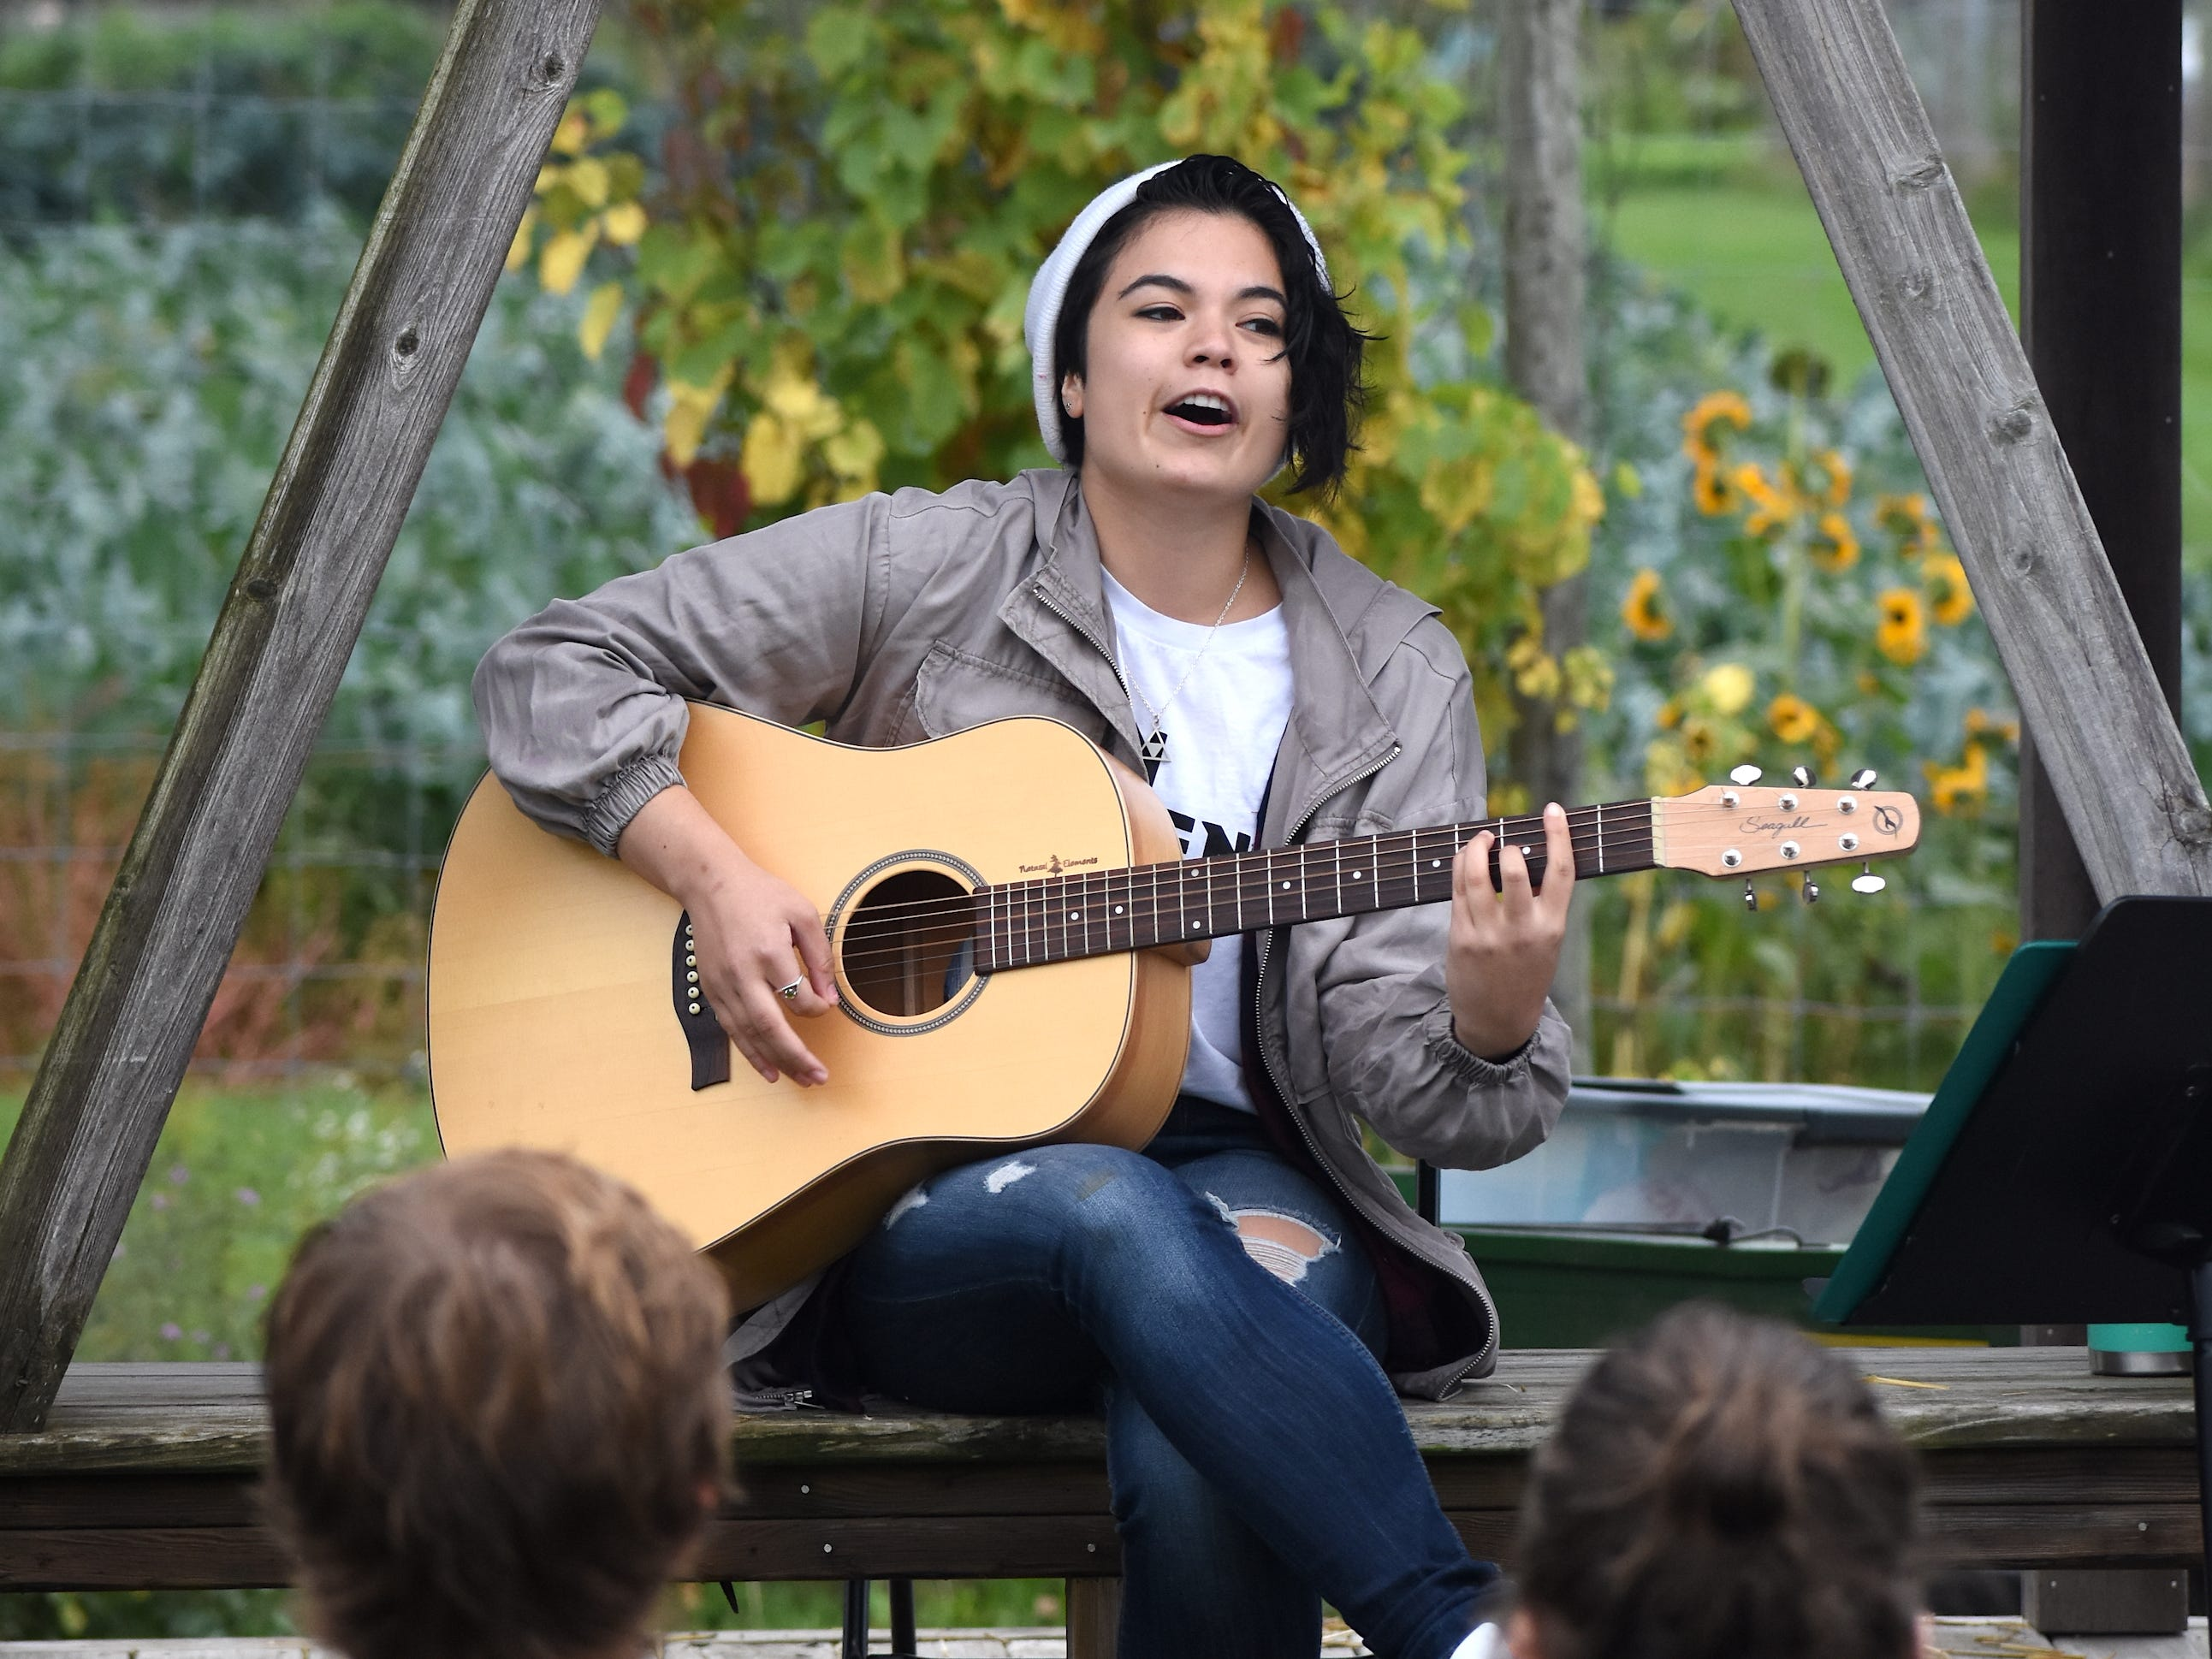 Guitarist/ singer Jasmine Purtell entertains guests with a little music.